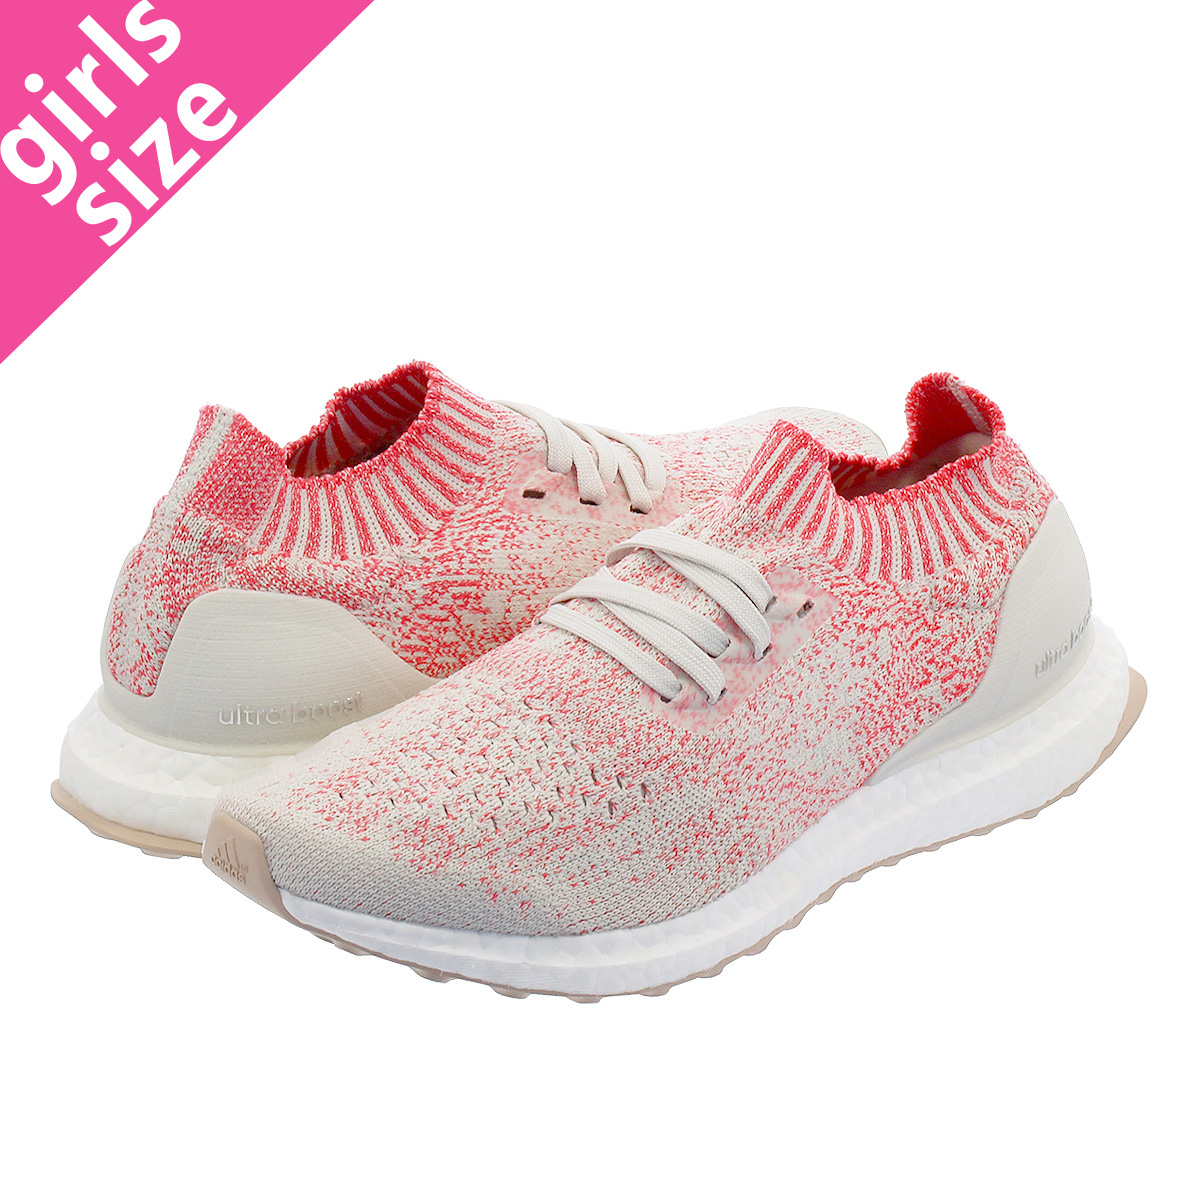 get new many styles authentic quality adidas ULTRA BOOST UNCAGED W Adidas ultra boost Ann caged W  WHITE/WHITE/SHOCK RED b75863